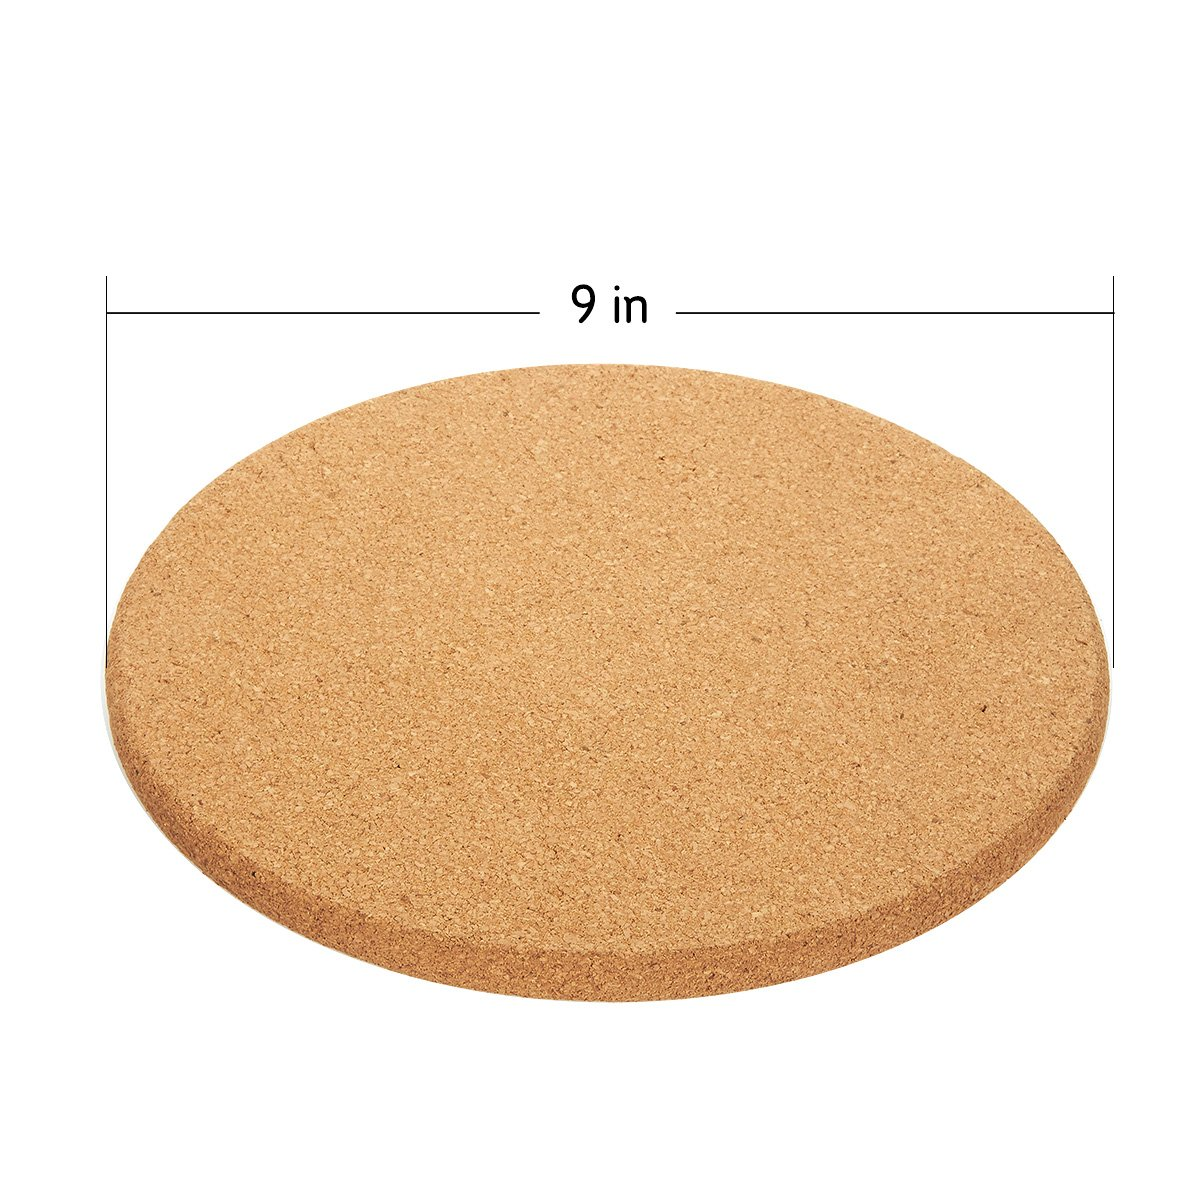 Juvale 4-Pack Cork Trivet Set and Kettles Round Corkboard Placemats Kitchen Hot Pads for Hot Pots Pans 9 x 9 x 0.5 Inches